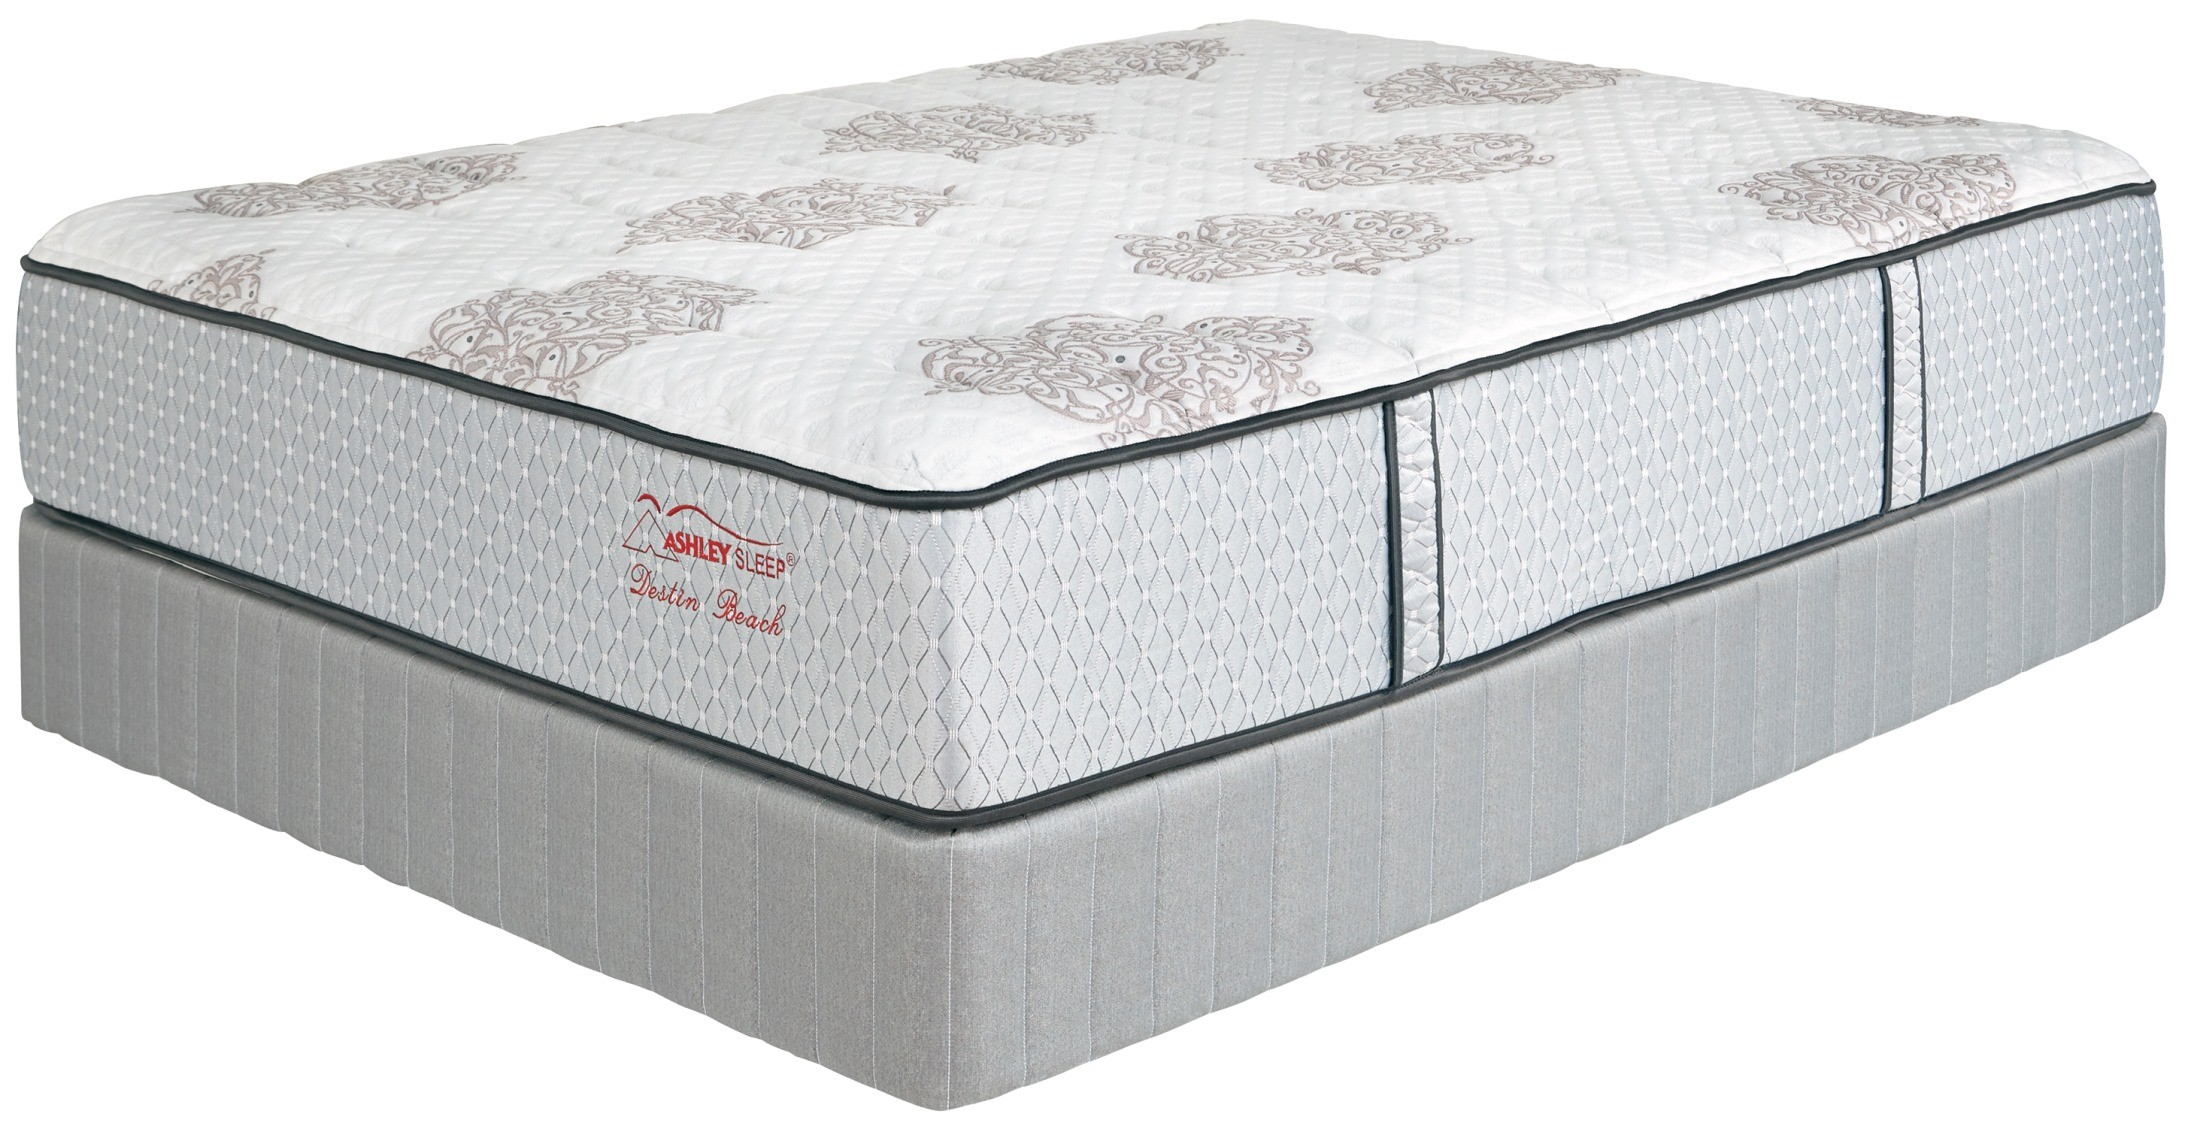 Destin Beach Cal King Size Firm Mattress M87051 Ashley Furniture